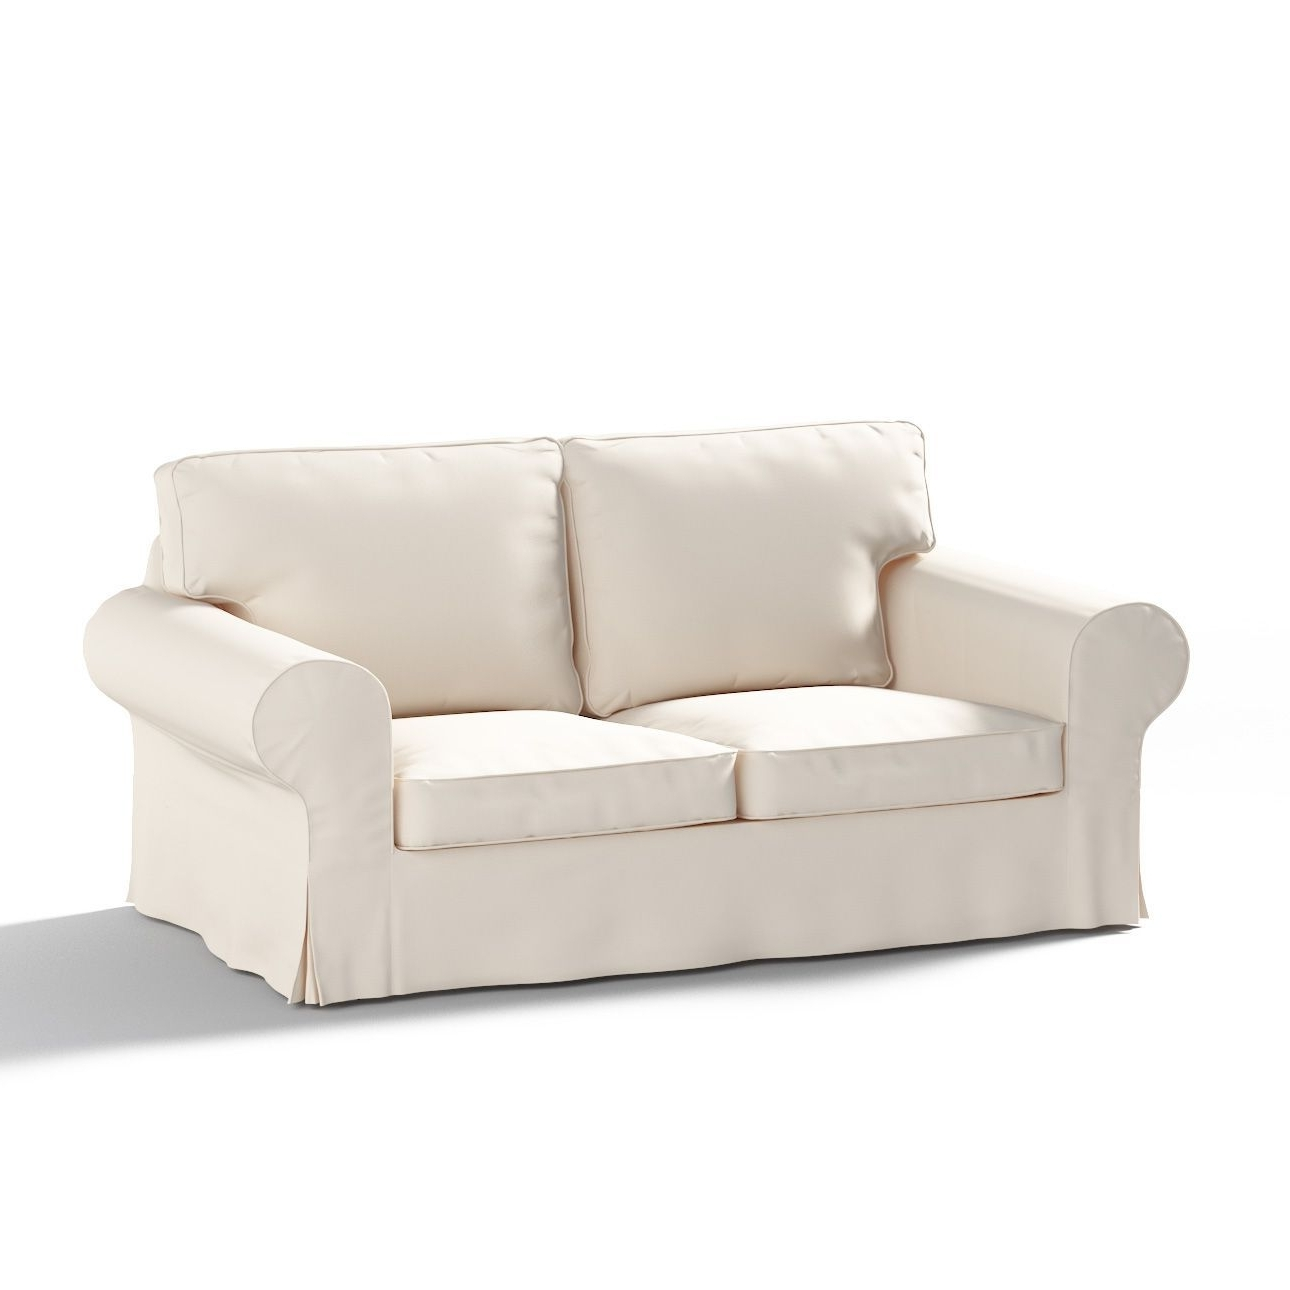 Home Reserve Sectional Review Sofas With Removable Washable Covers In Widely Used Sofas With Washable Covers (View 6 of 20)